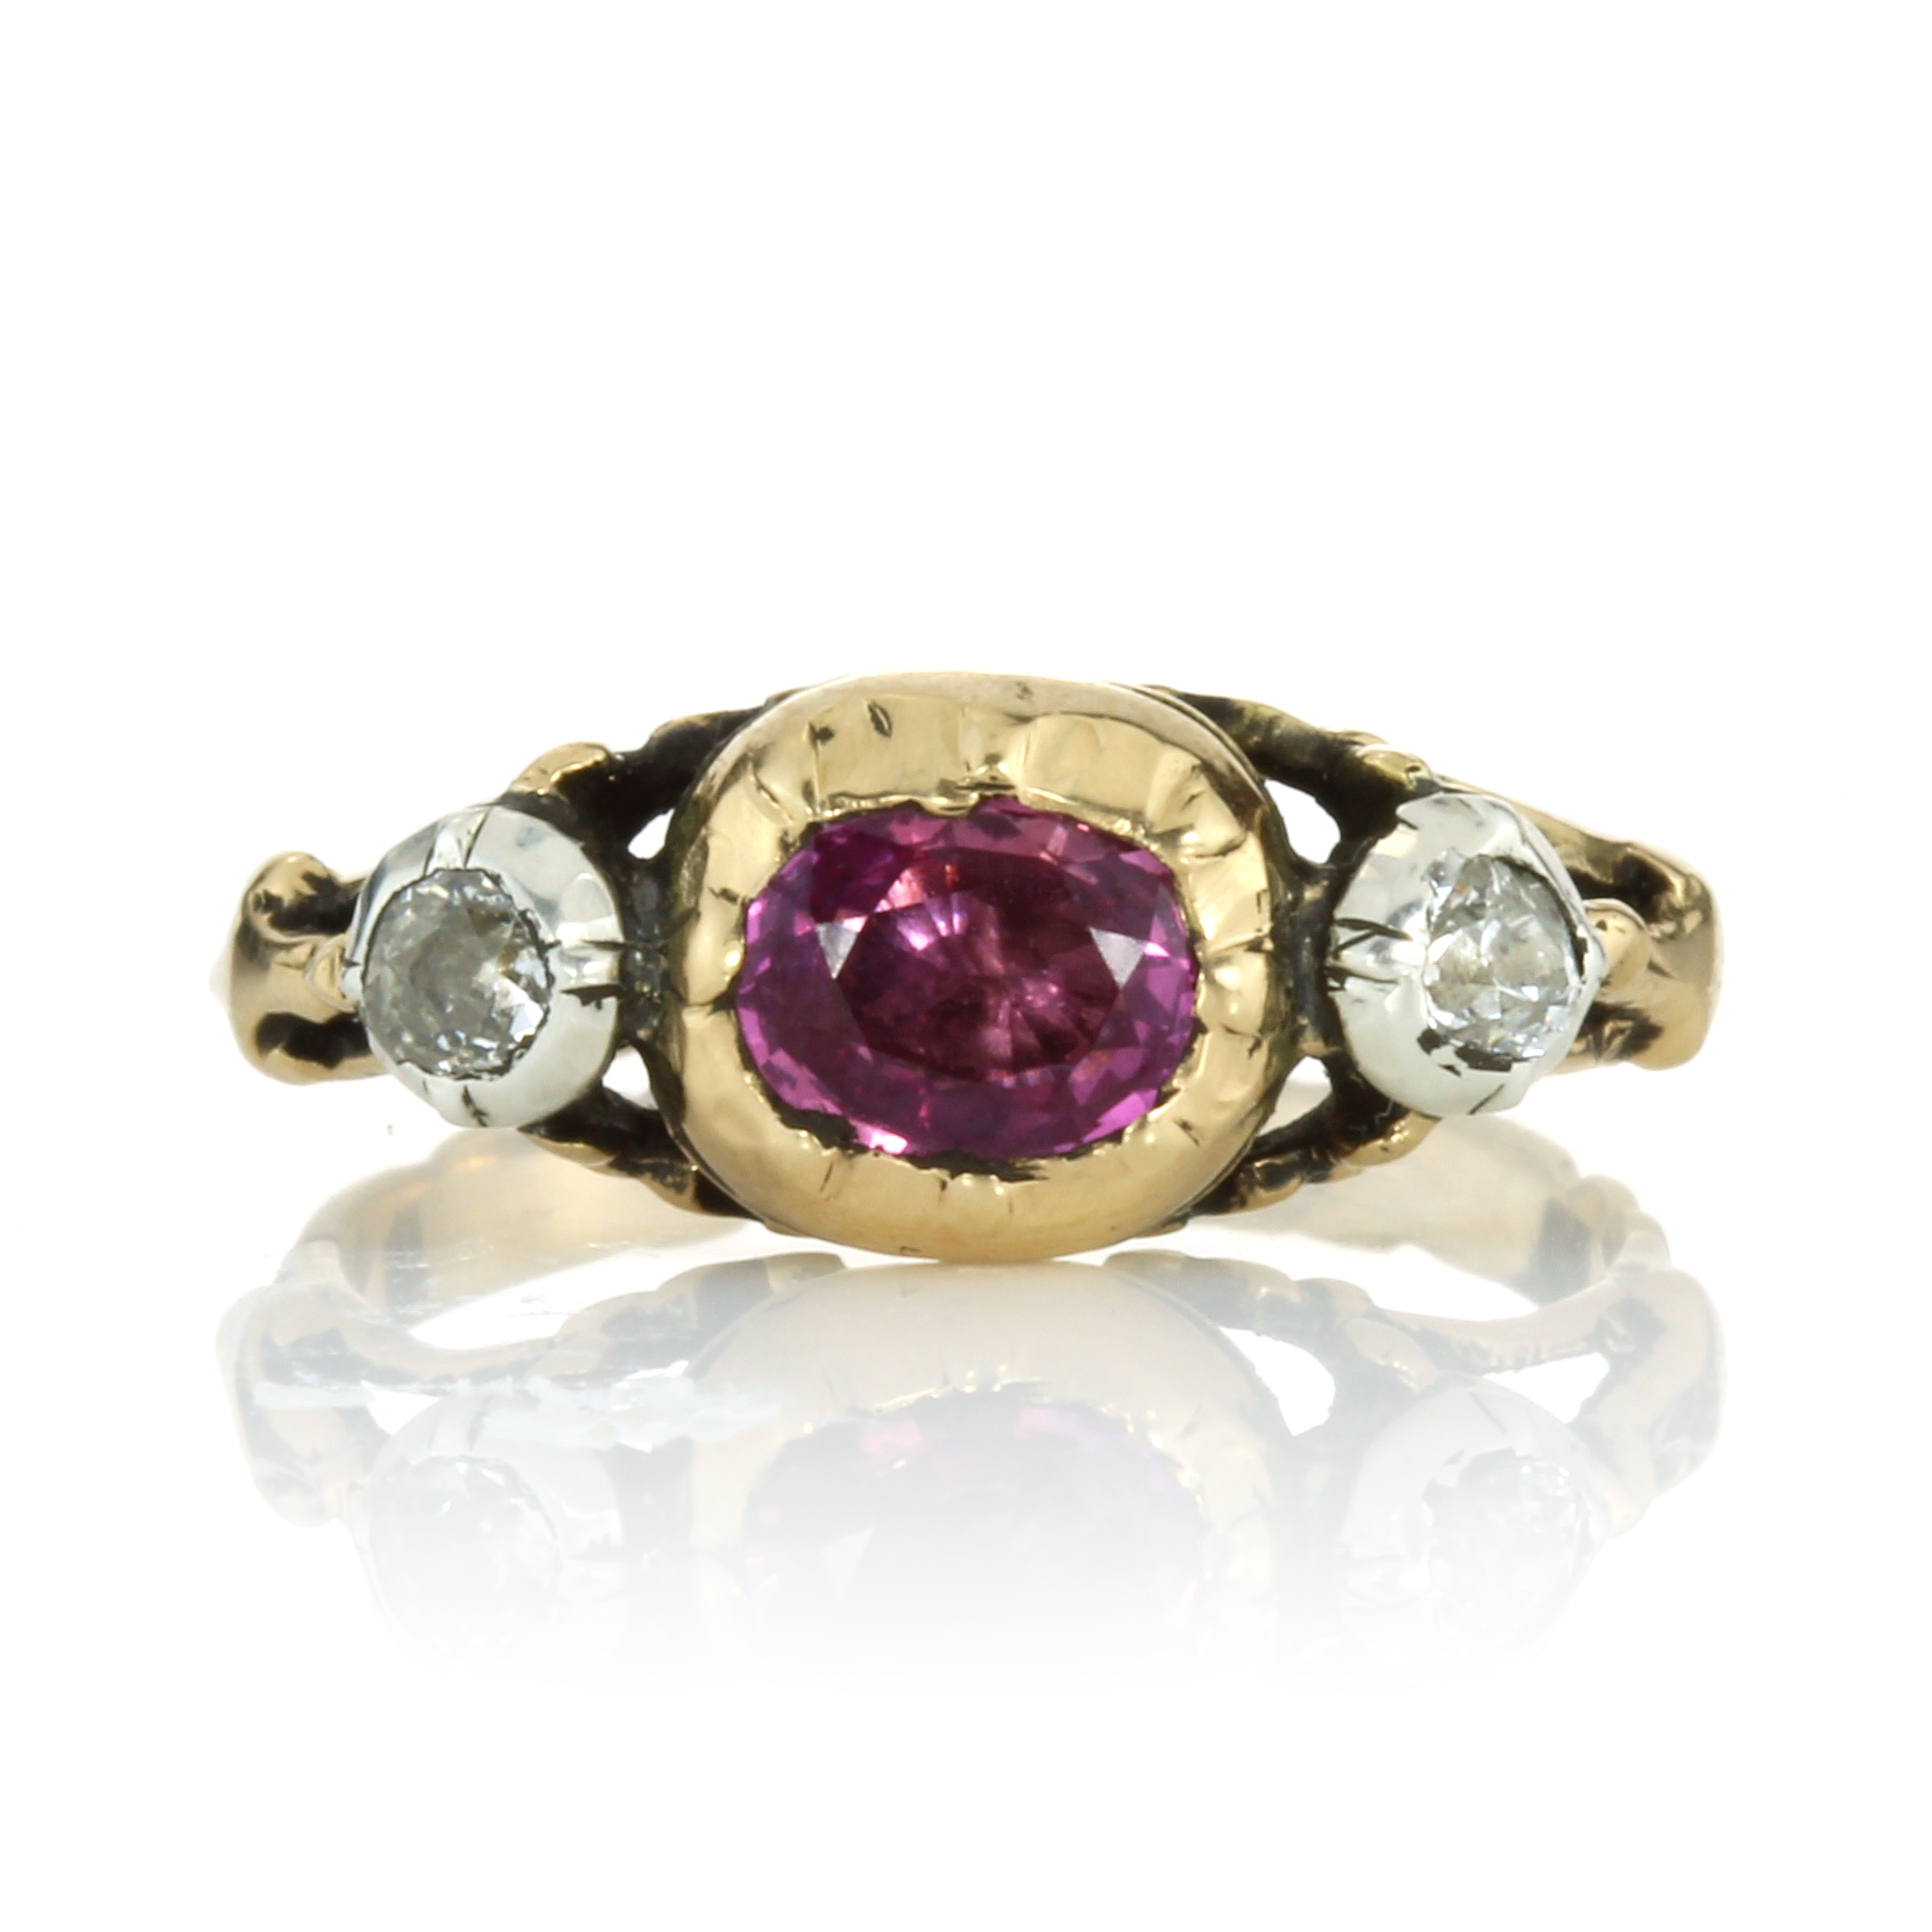 Los 40 - AN ANTIQUE RUBY AND DIAMOND THREE STONE RING, EARLY 19TH CENTURY set with a central oval cut ruby